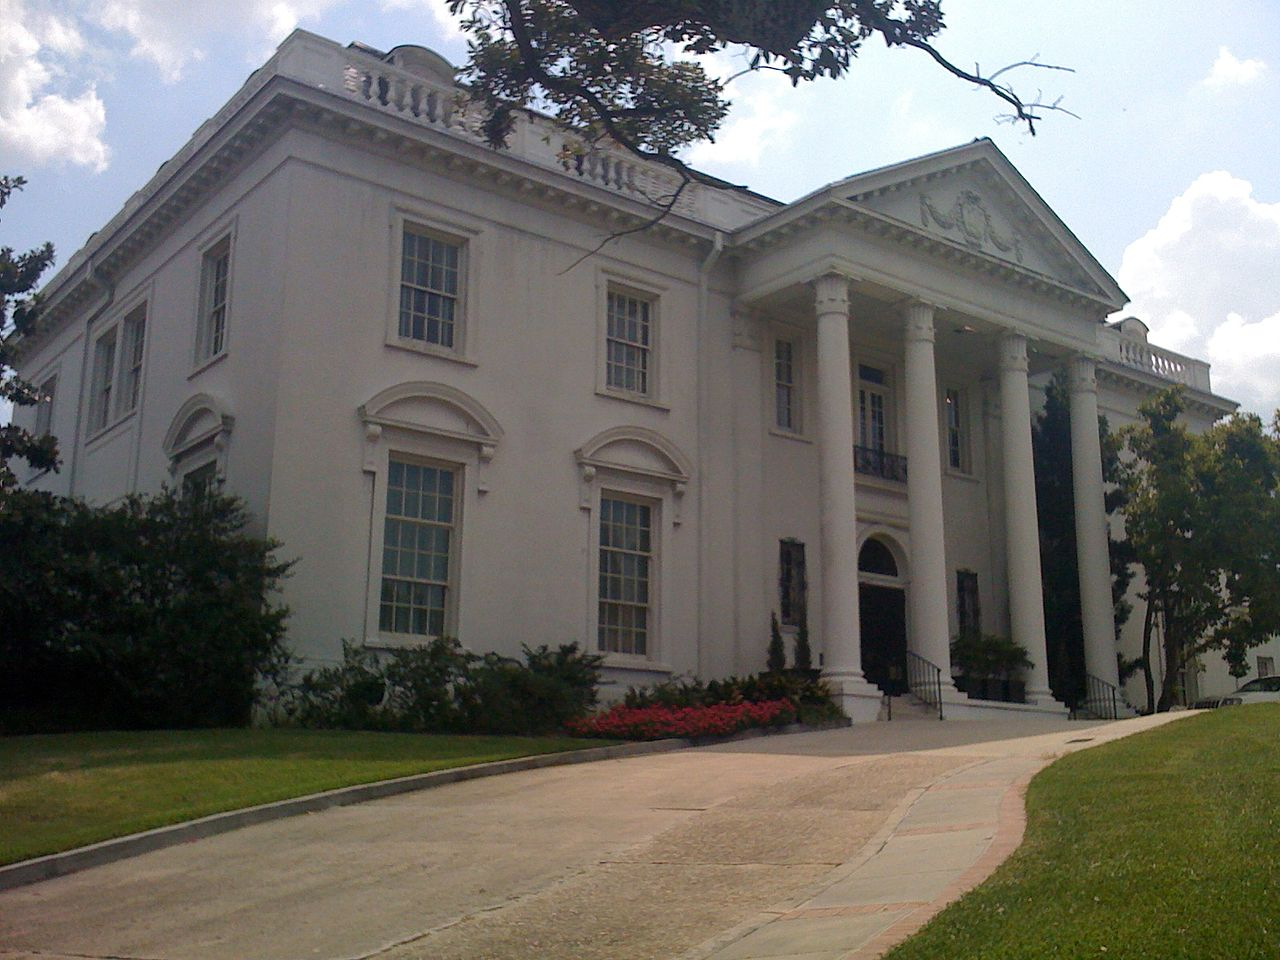 The Old Governor's Mansion, Baton Rouge, LA